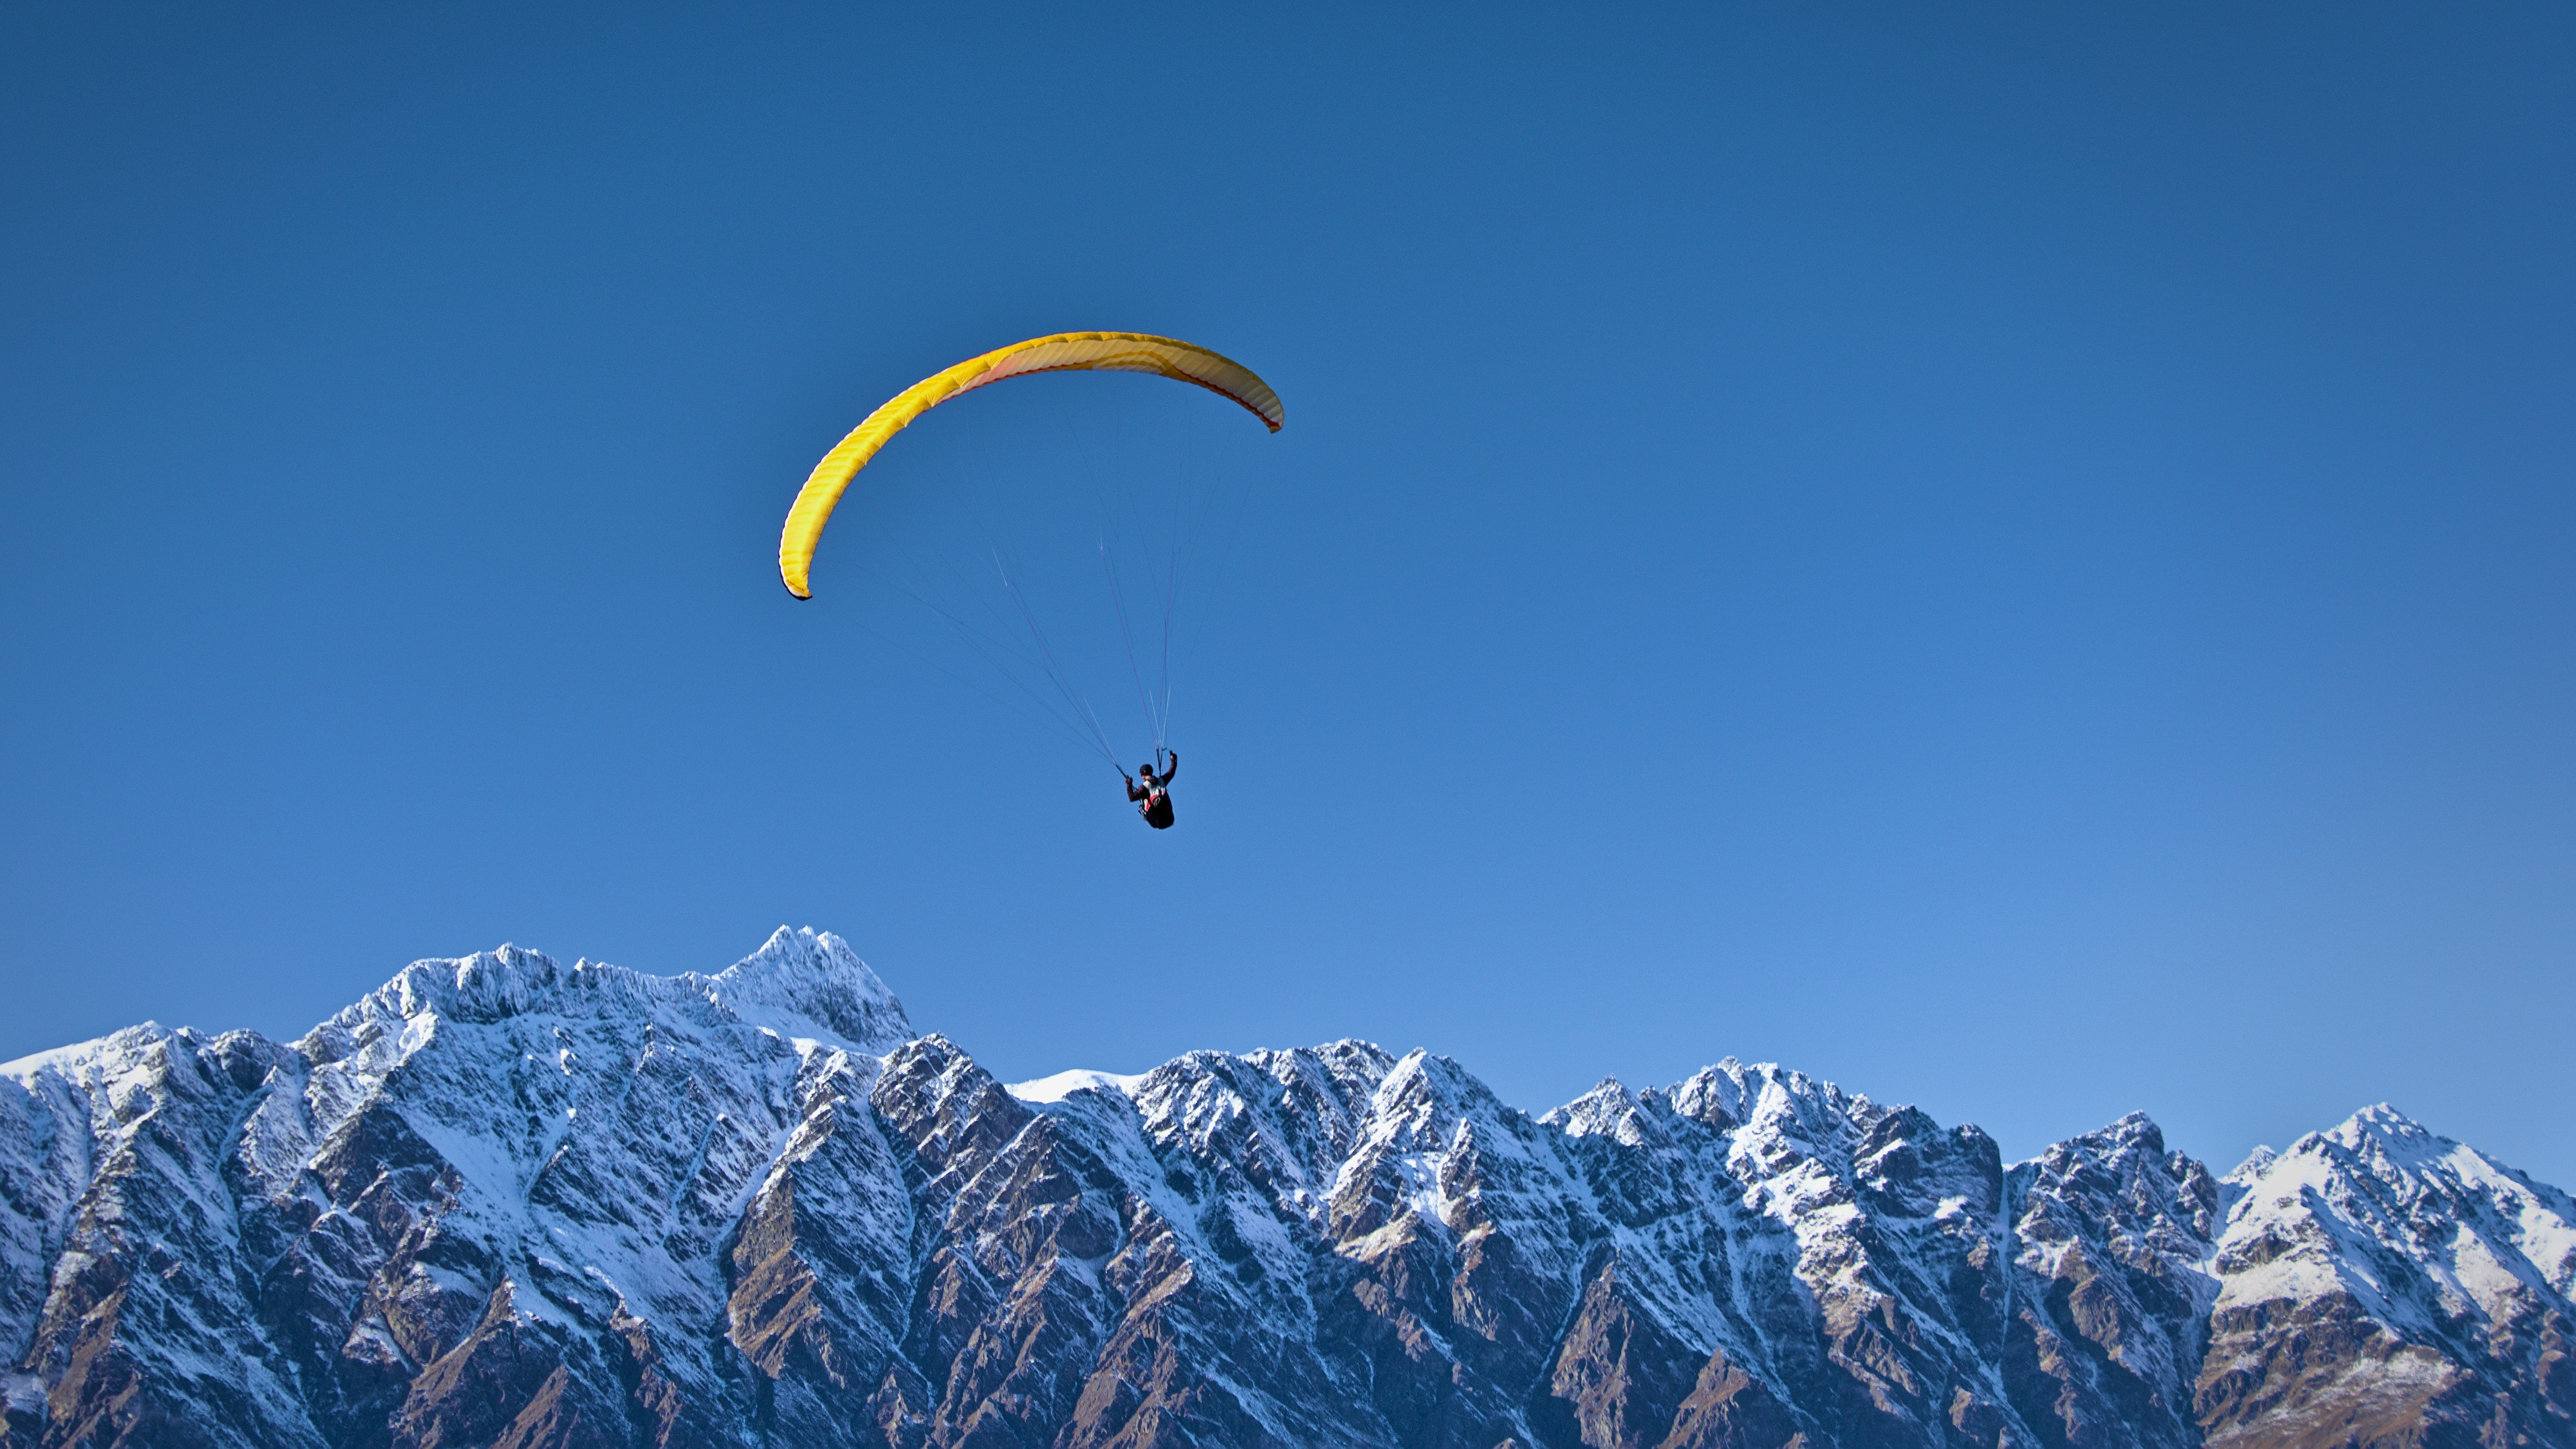 A paraglider soaring over snowy mountains